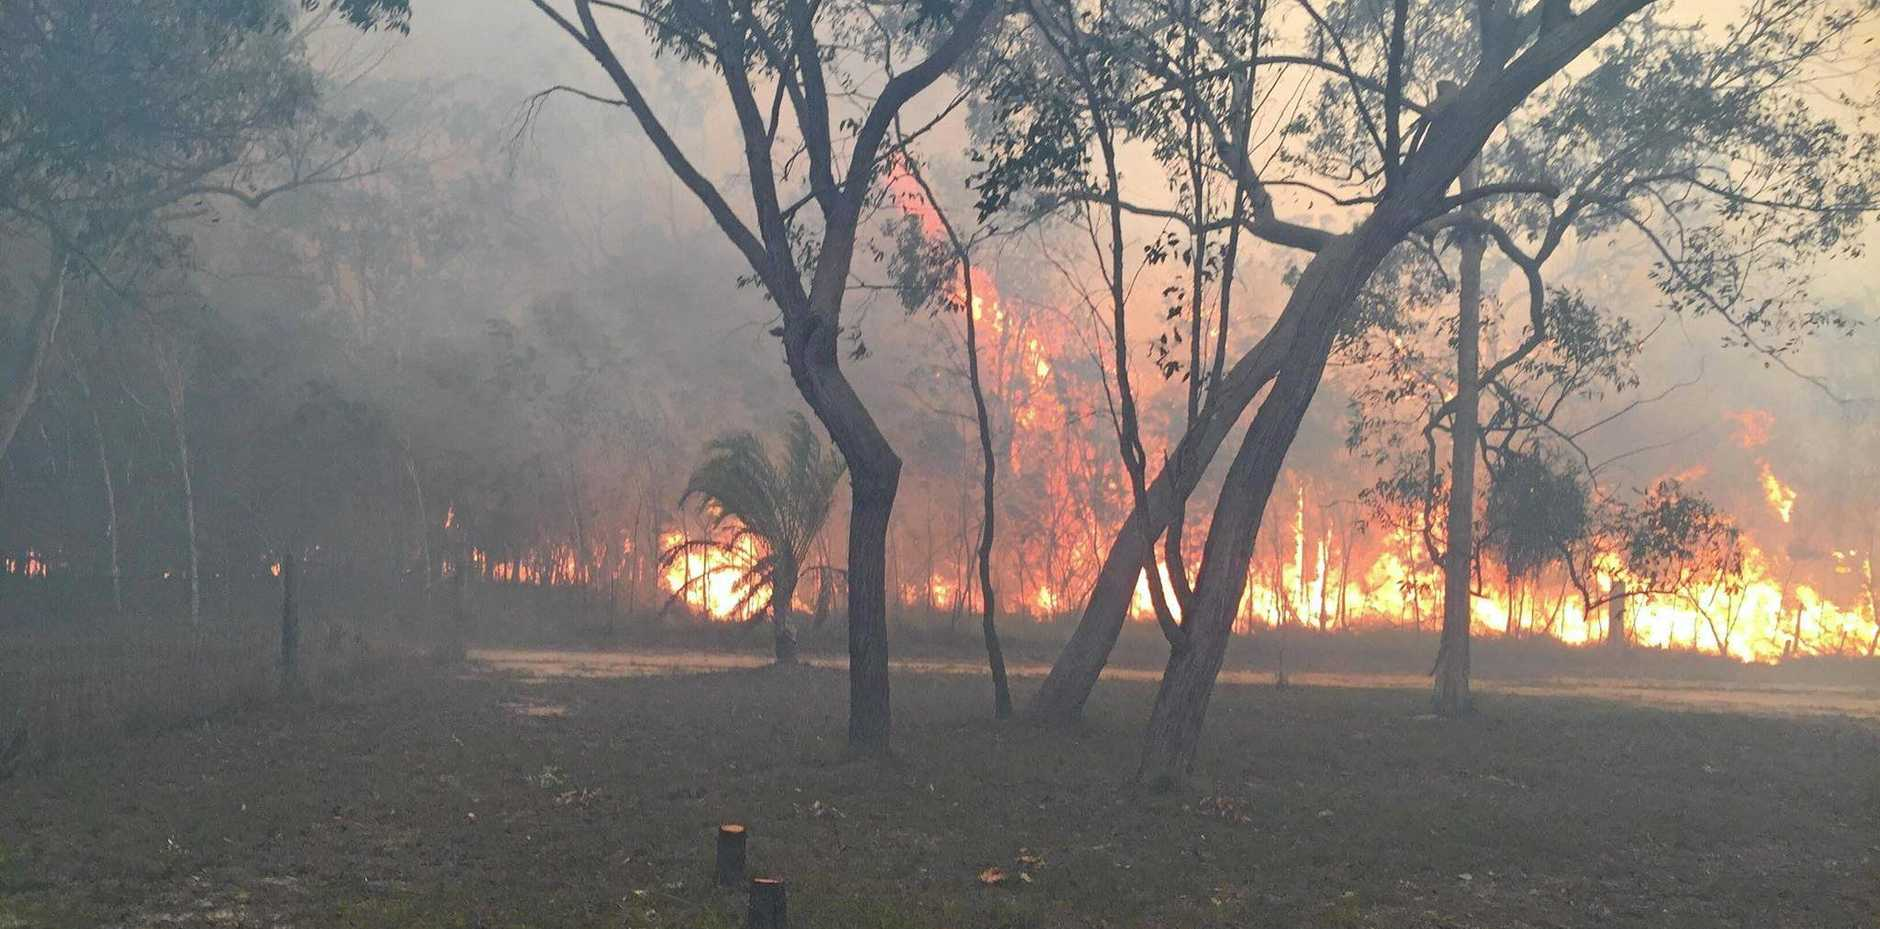 Bungadoo fire crews shared these harrowing images.